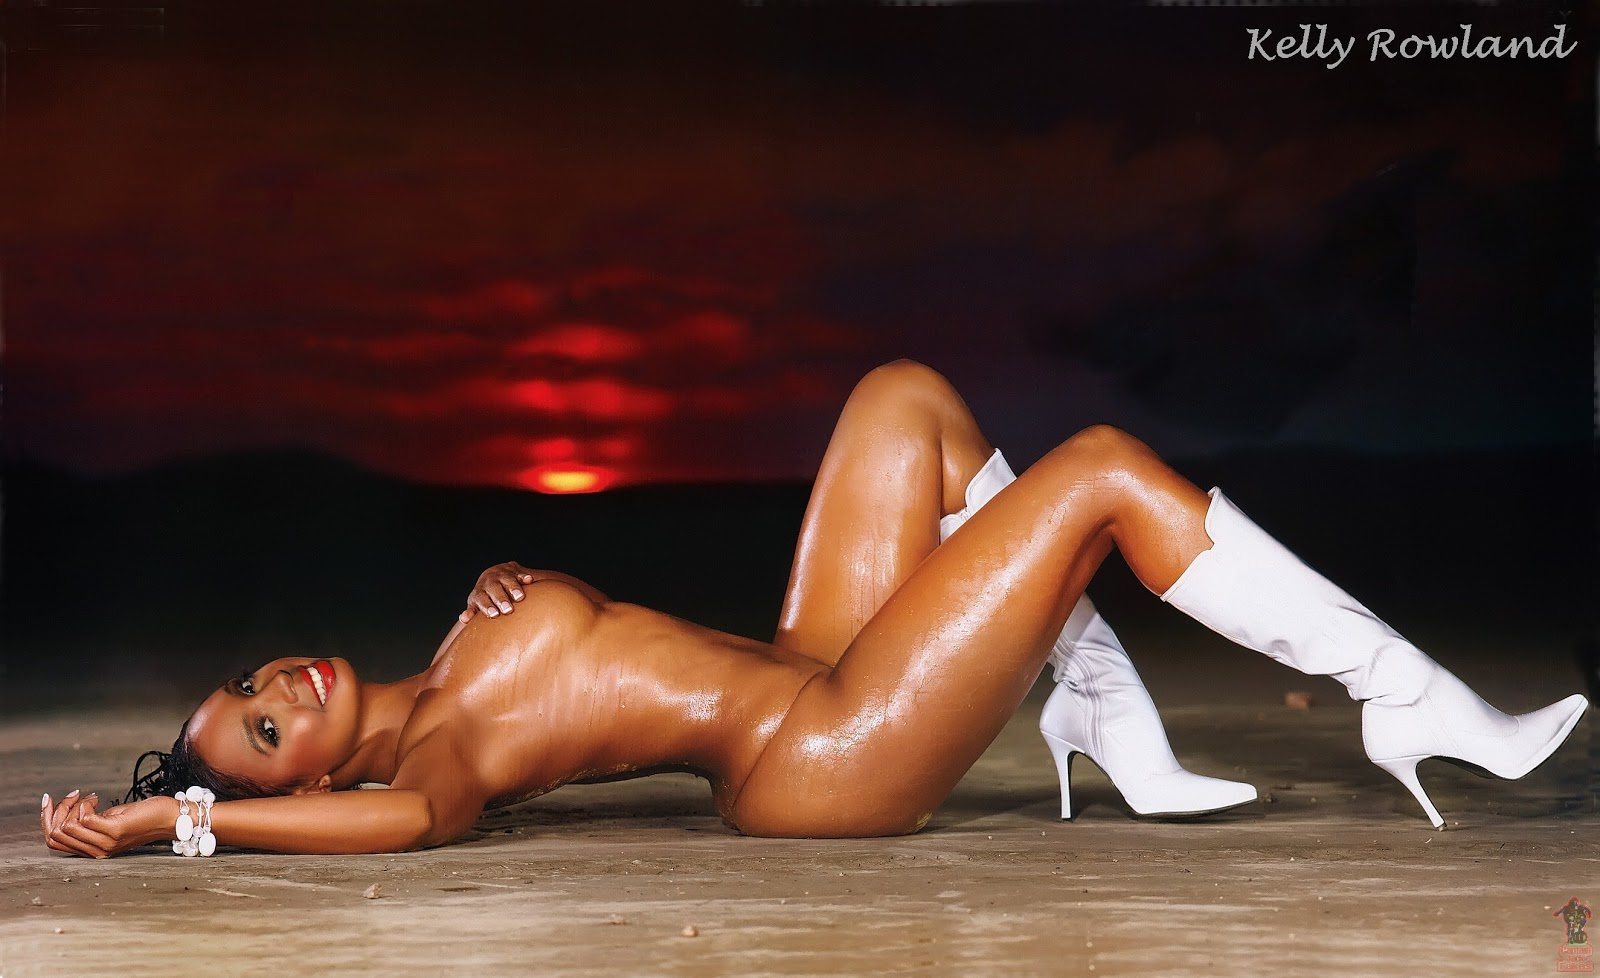 Kelly rowland being fucked naked pity, that